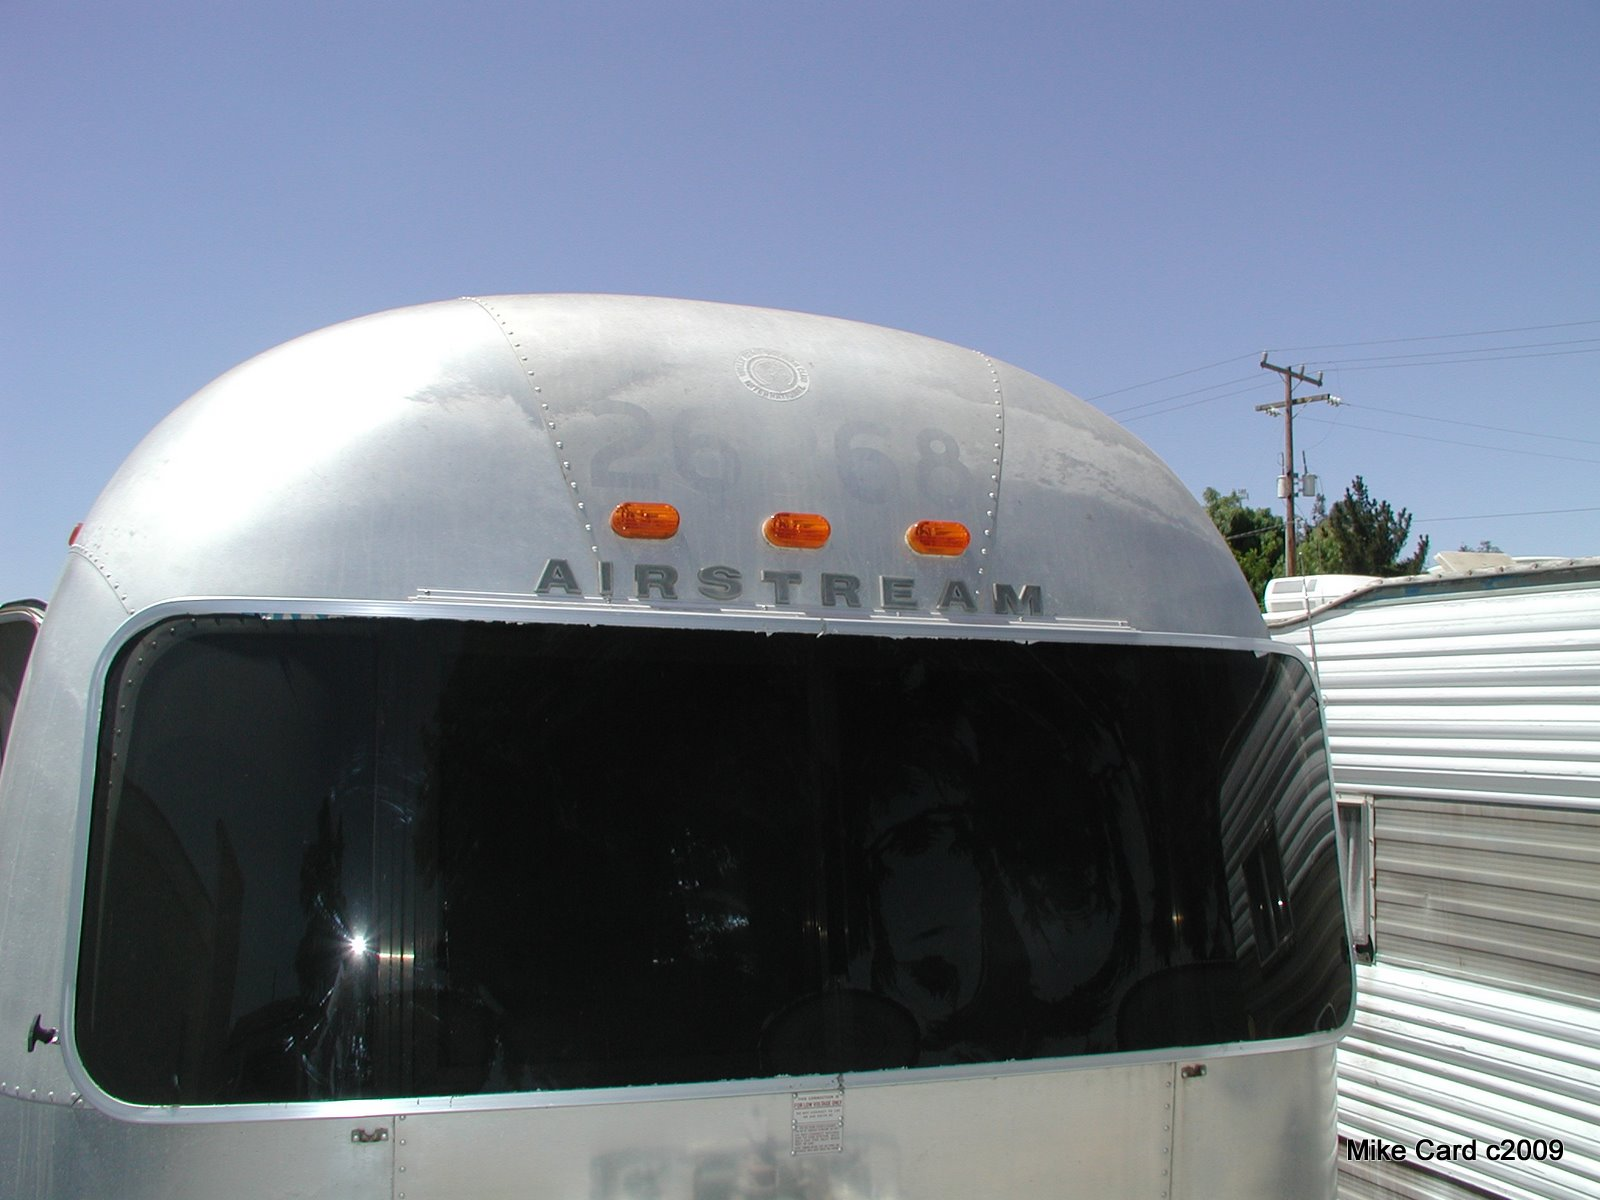 Click image for larger version  Name:AirstreamFront.JPG Views:76 Size:194.3 KB ID:94166